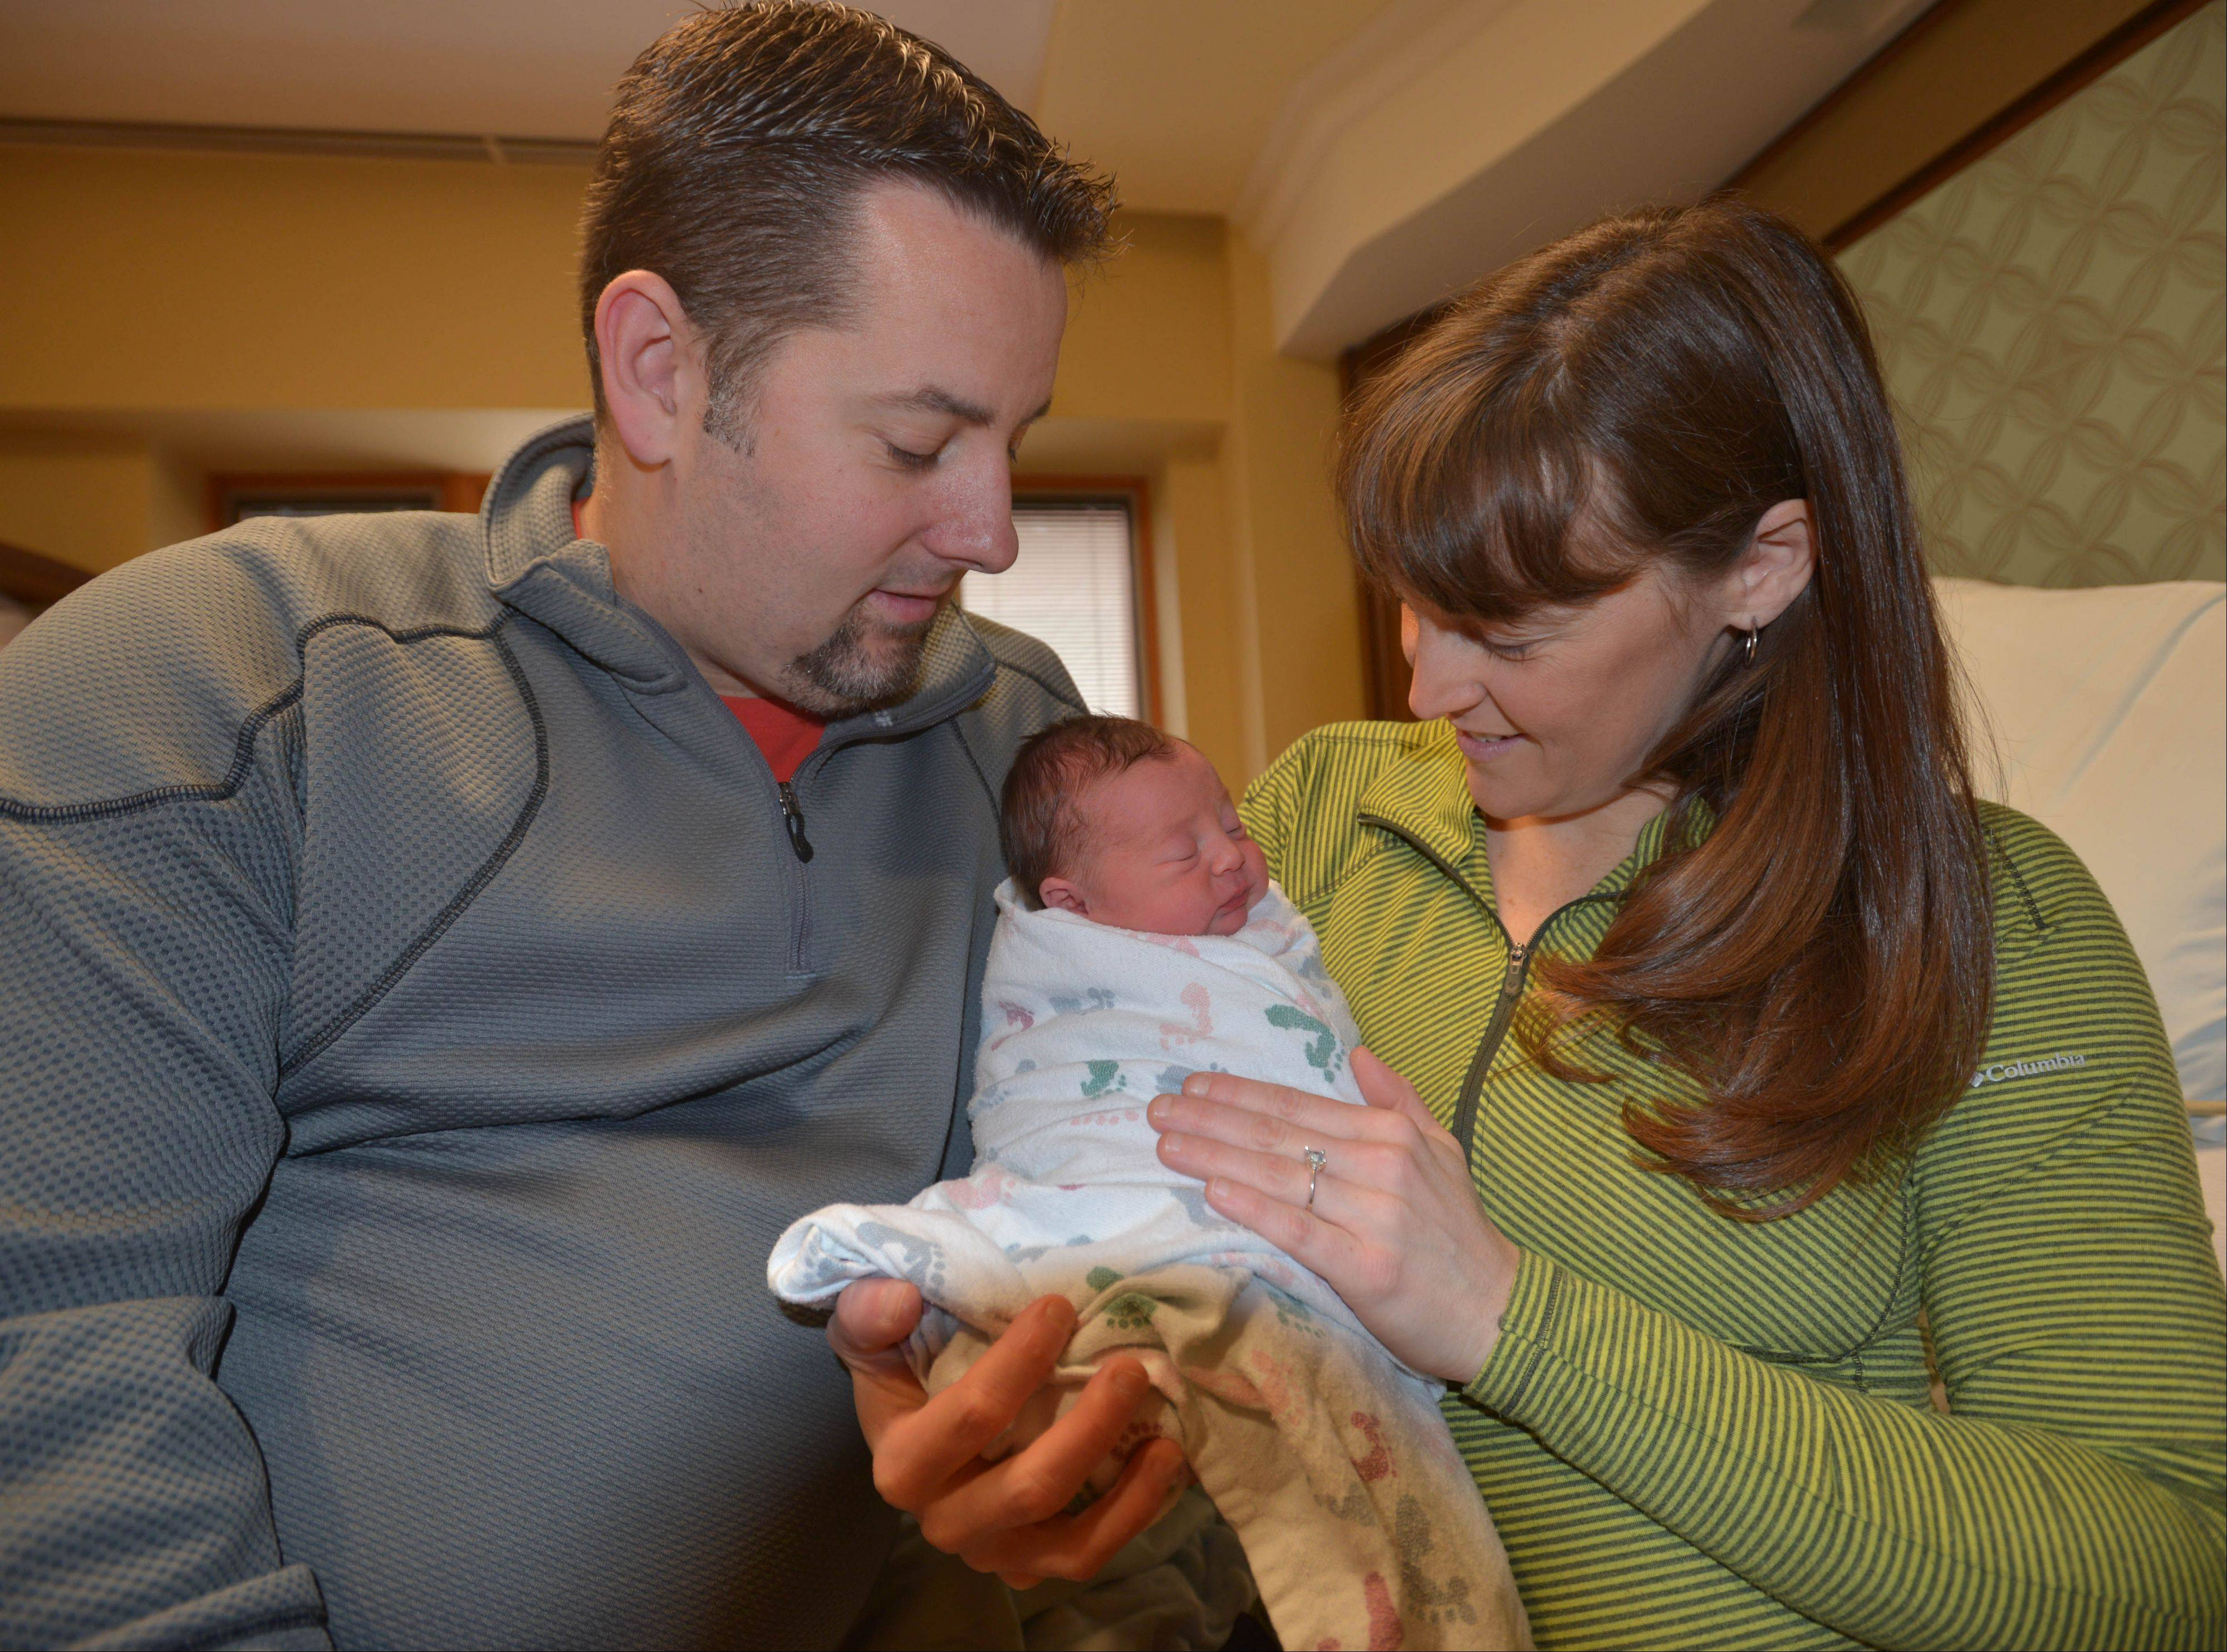 Steve and Kelle Lalko of Aurora hold their newborn daughter, Ella Marie, at Edward Hospital in Naperville. Ella was born at 1:11 a.m. Wednesday, weighing 5.8 pounds and at 18 inches long. She was the first baby born in 2014 in DuPage County.